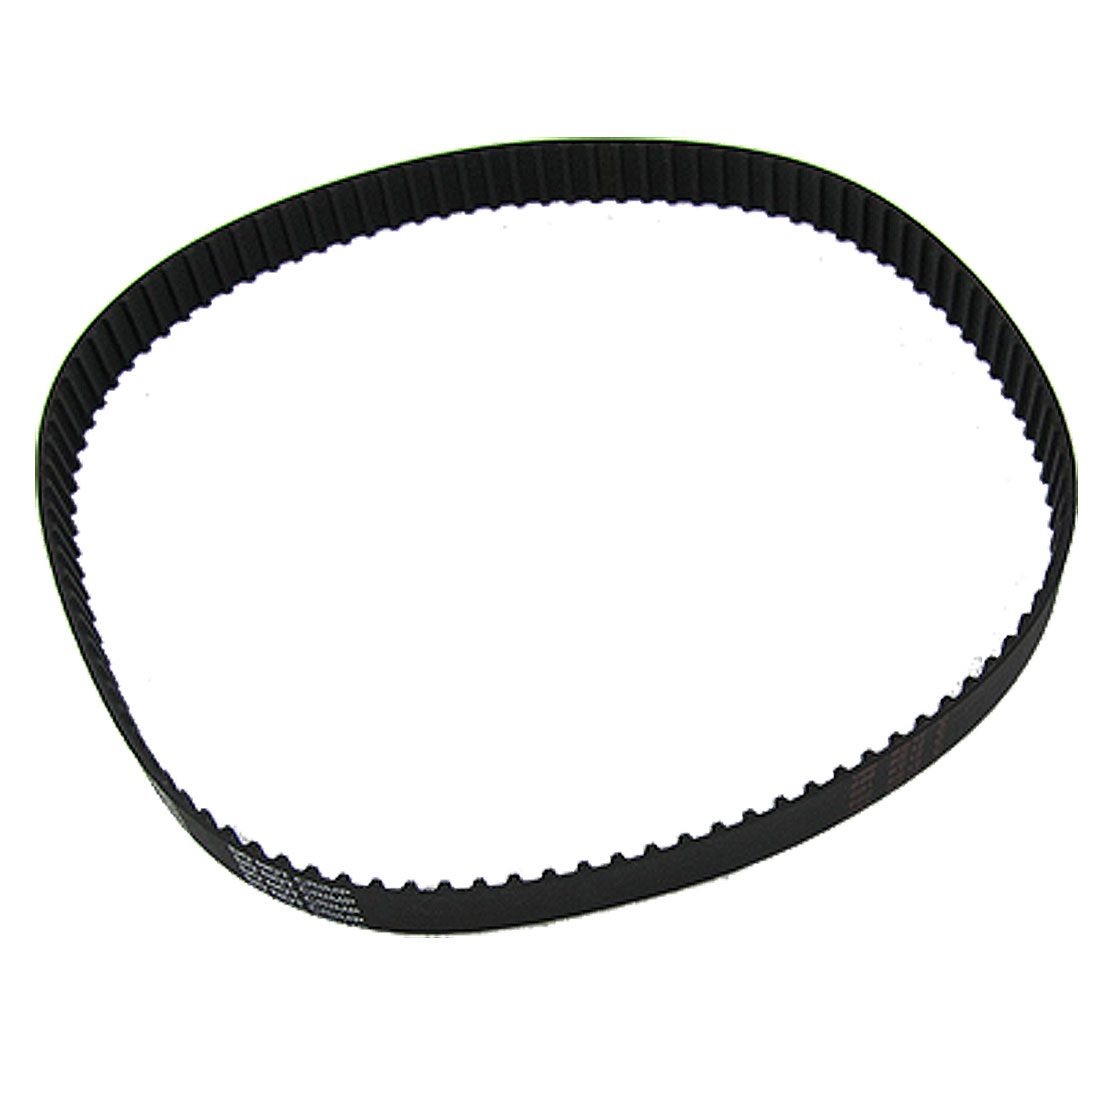 206XL 15mm Width 5.08mm Pitch Black Rubber PU Synchronous Timing Belt